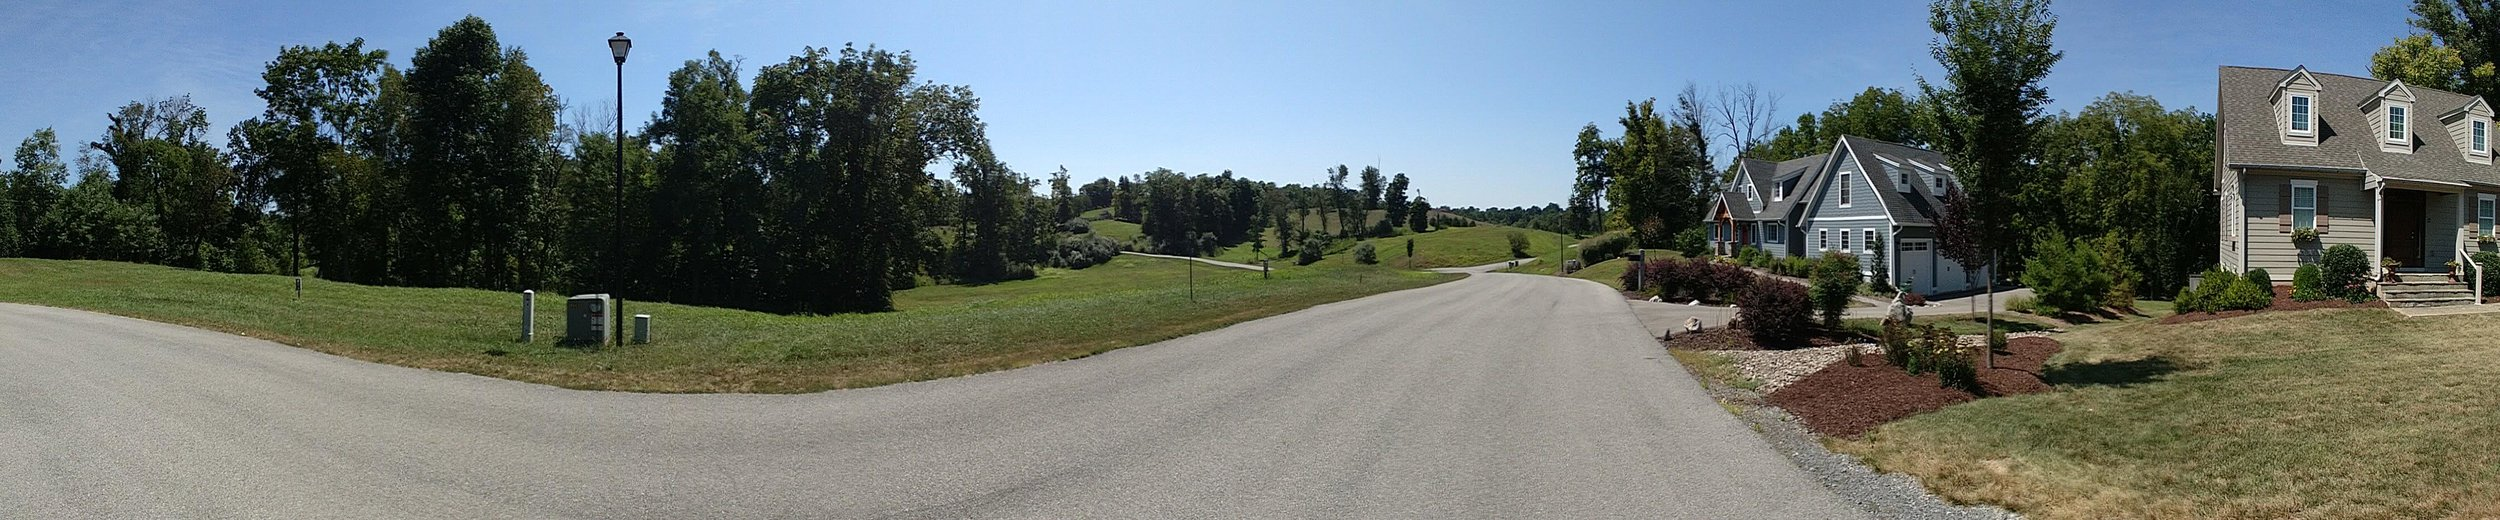 Panorama of houses on lots #1 and #2